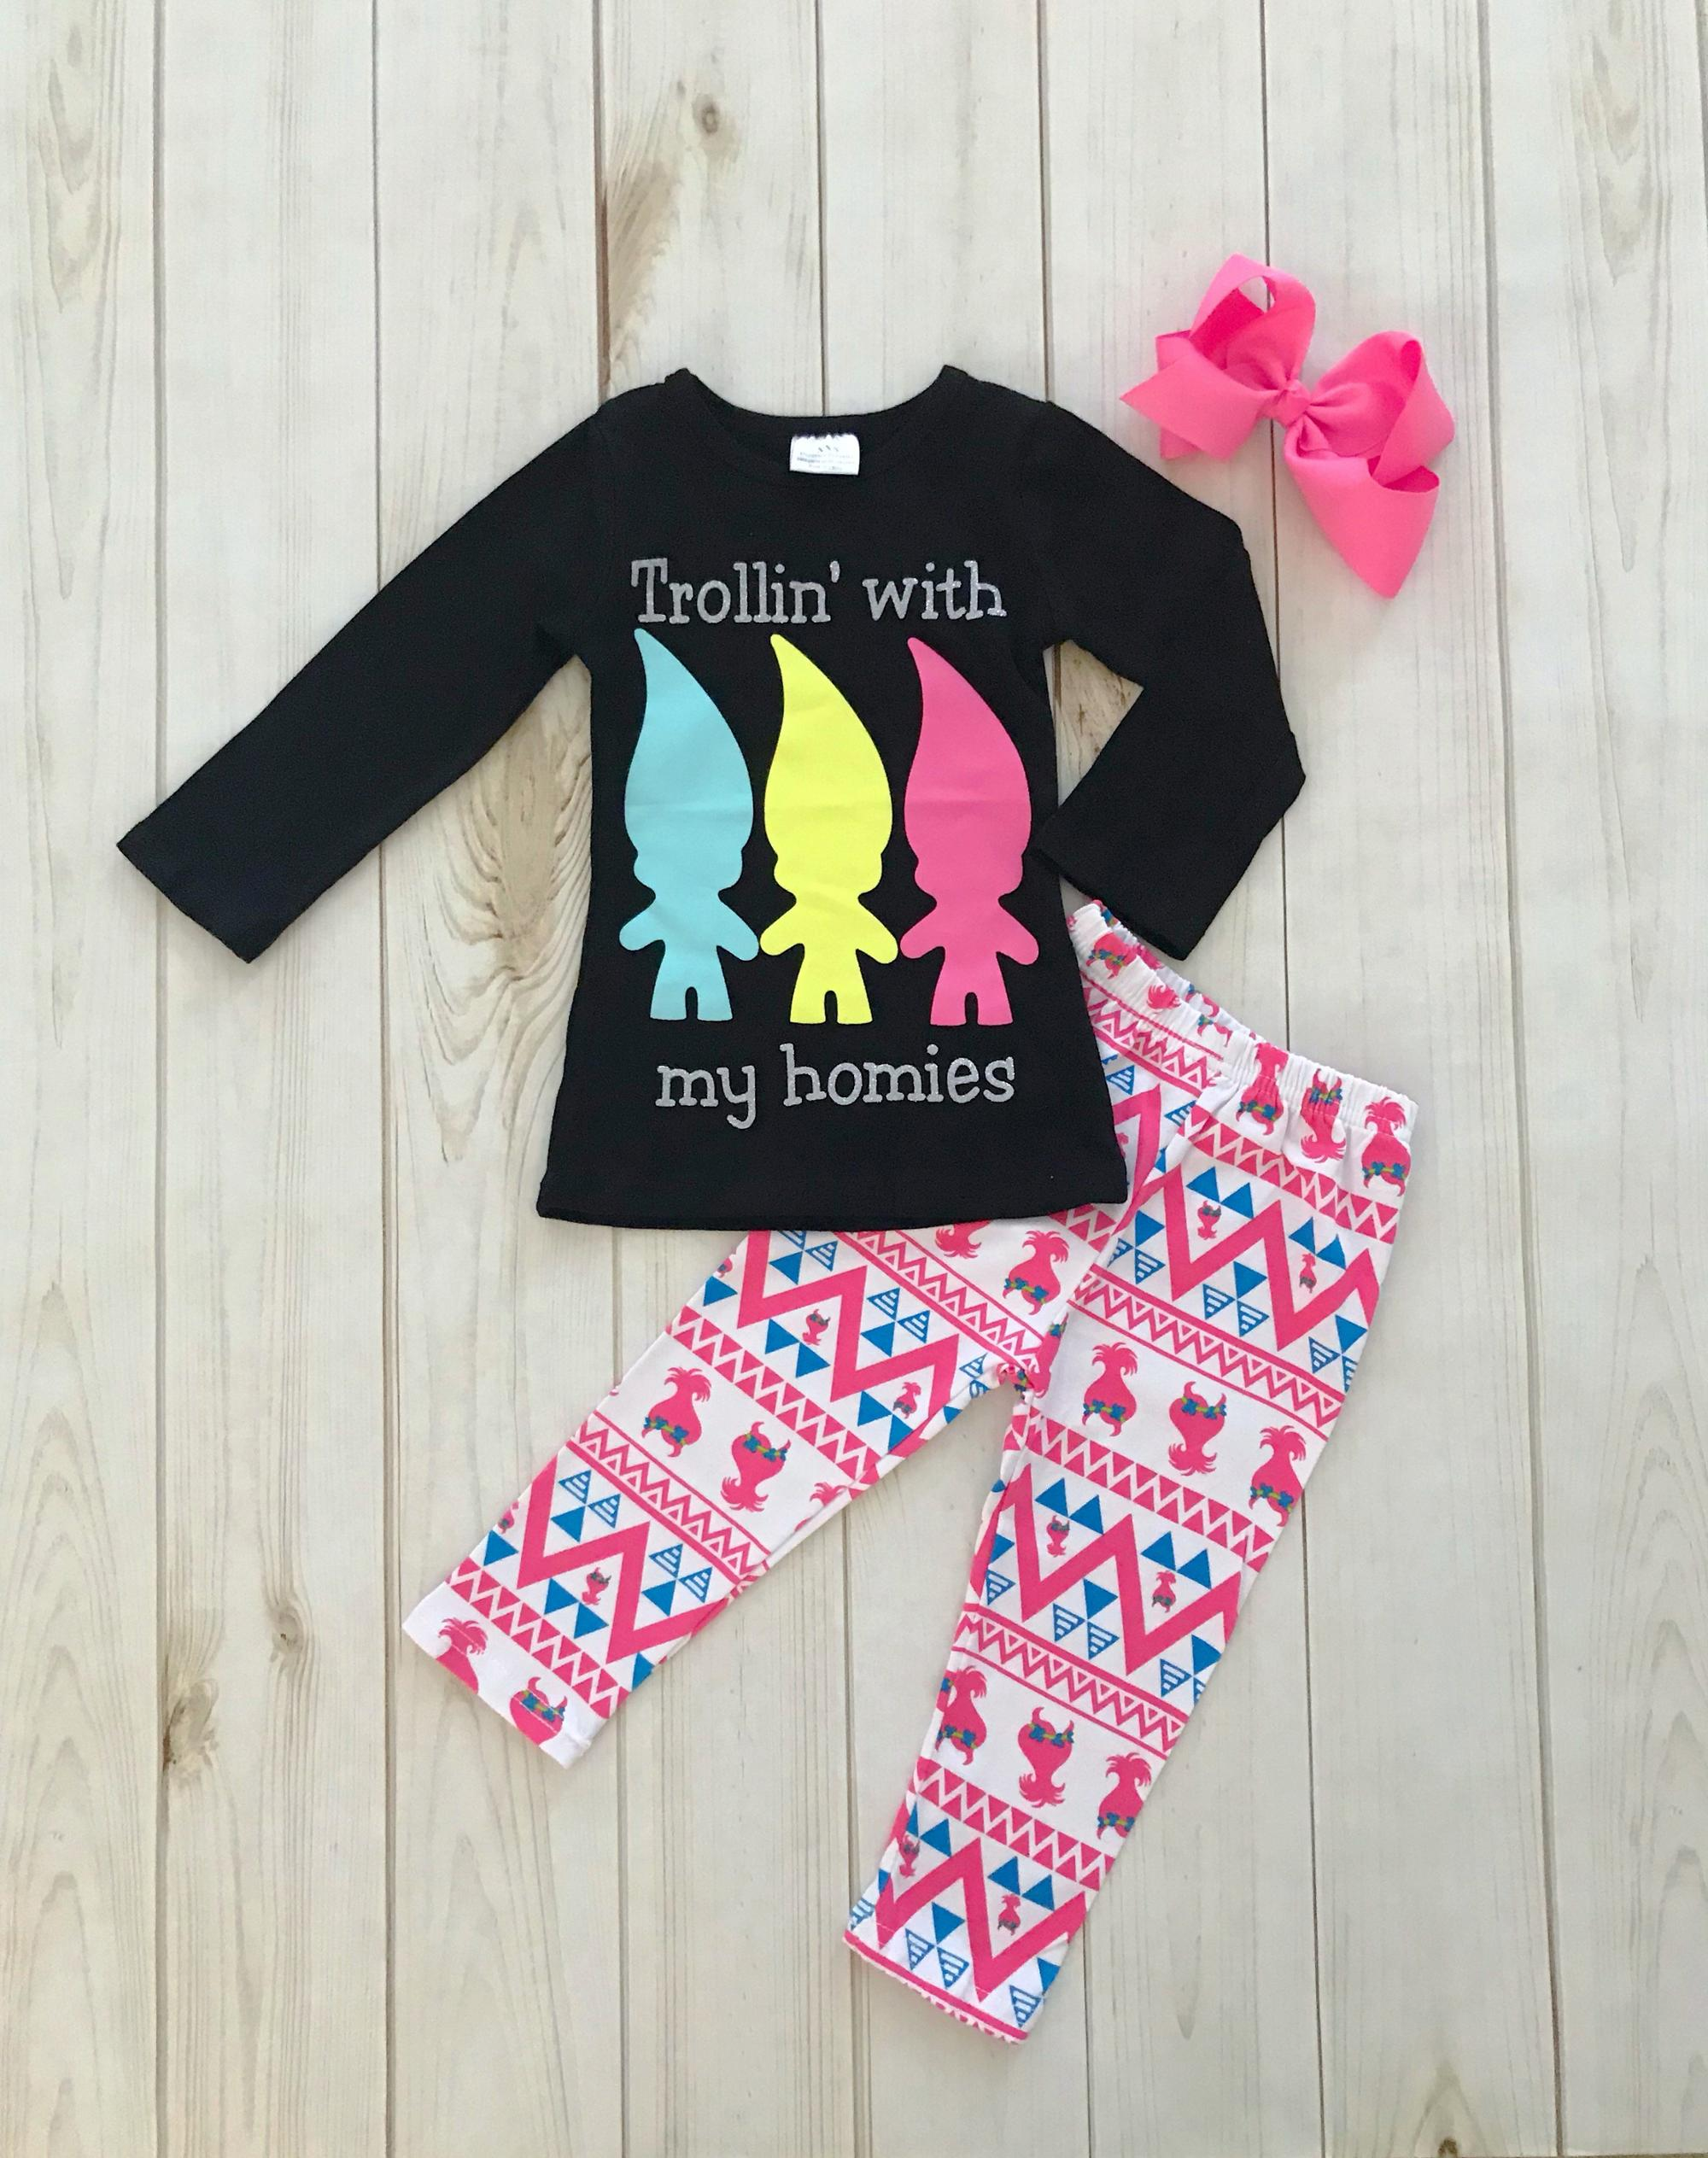 hot sale fall winter baby girls cotton children clothes wholesale  children s boutique clothing girls fall outfit dce6499061